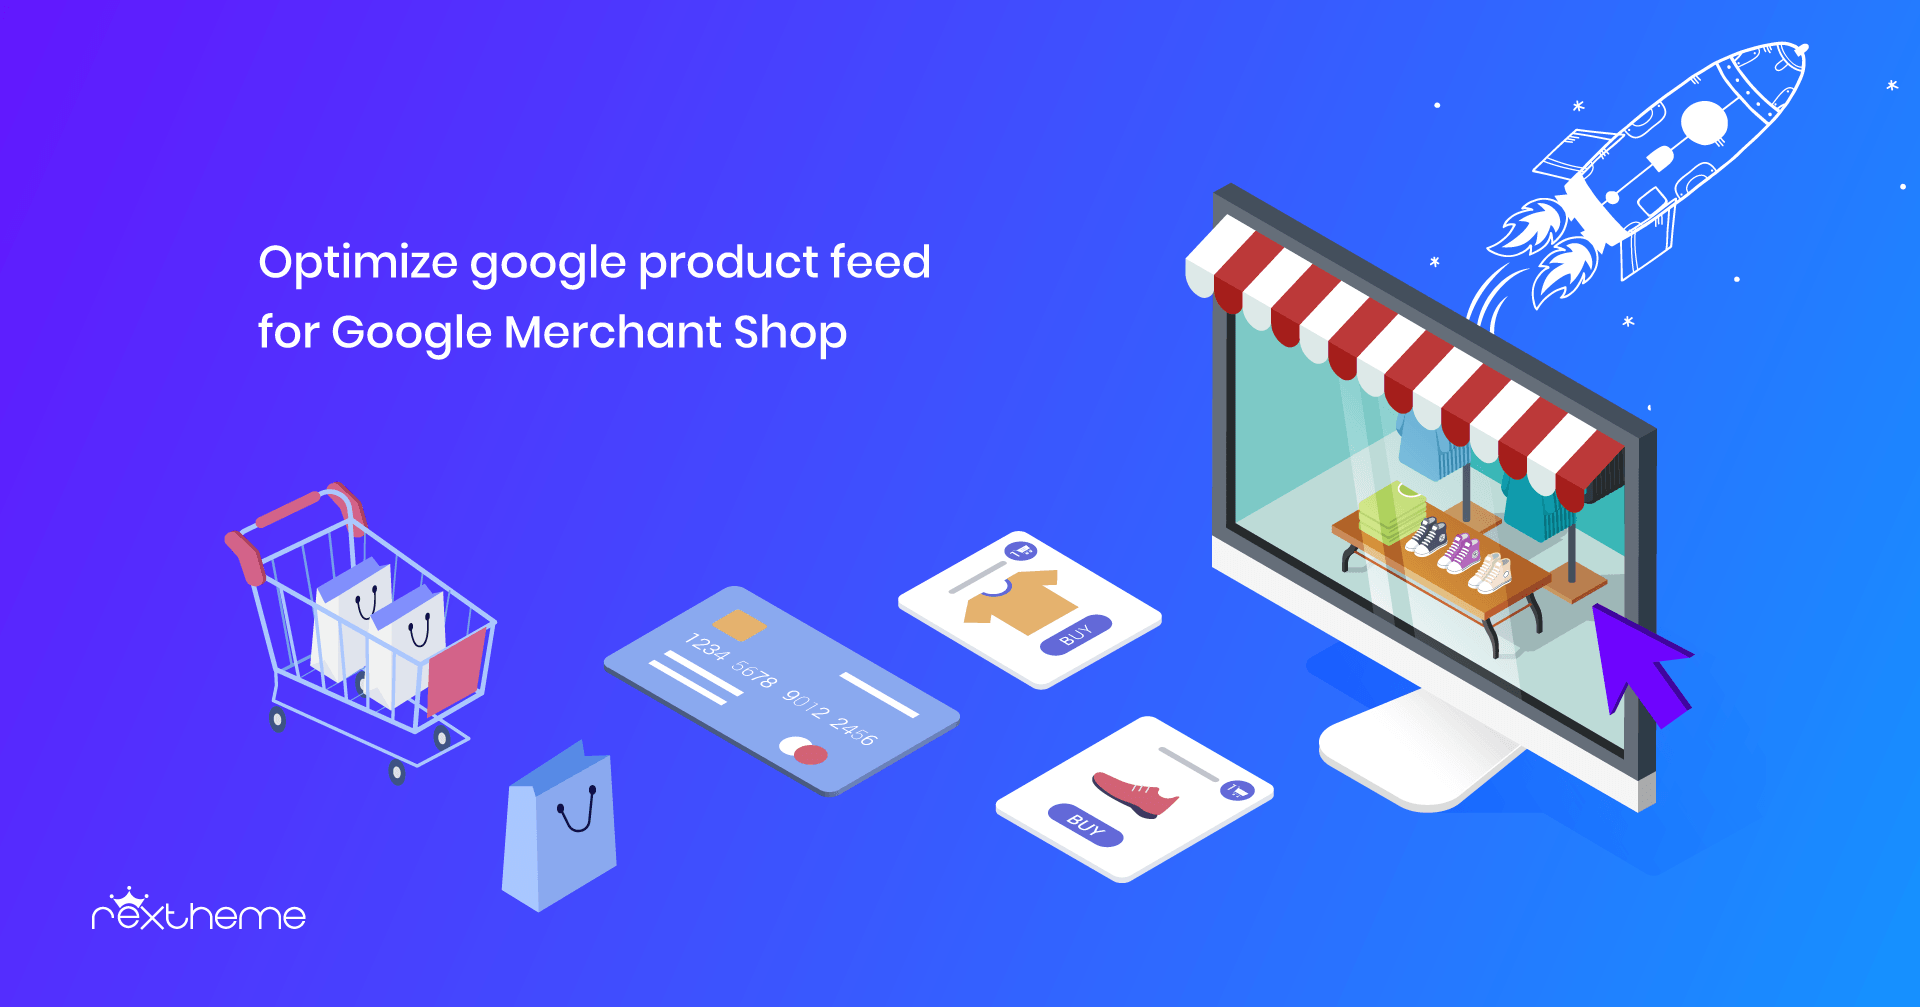 How To Optimize Google Product Feed For Google Merchant Shop